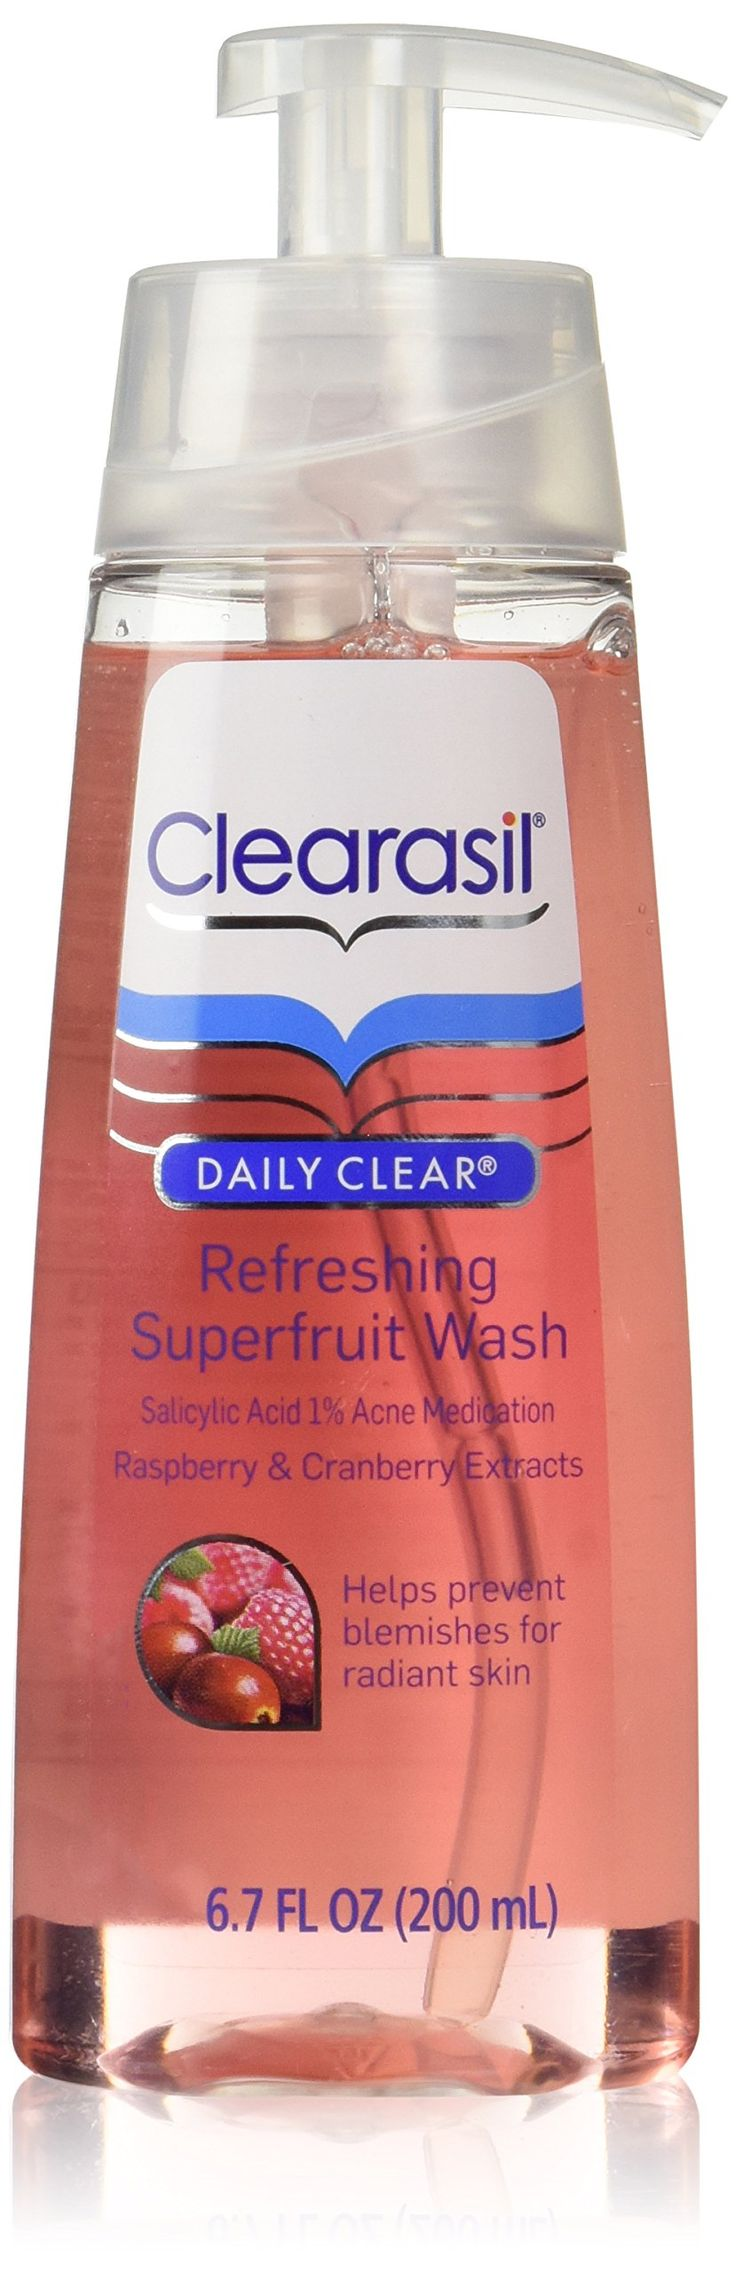 Clearasil Daily Clear Refreshing Superfruit Wash with Acne Medication, Raspberry and Cranberry Extracts, 6.7 Ounce. Contains raspberry and cranberry extracts. Helps prevent blemishes for radiant skin. Refreshing fragrance you will enjoy using every day. Brings continuous and long-lasting fragrance into your home.